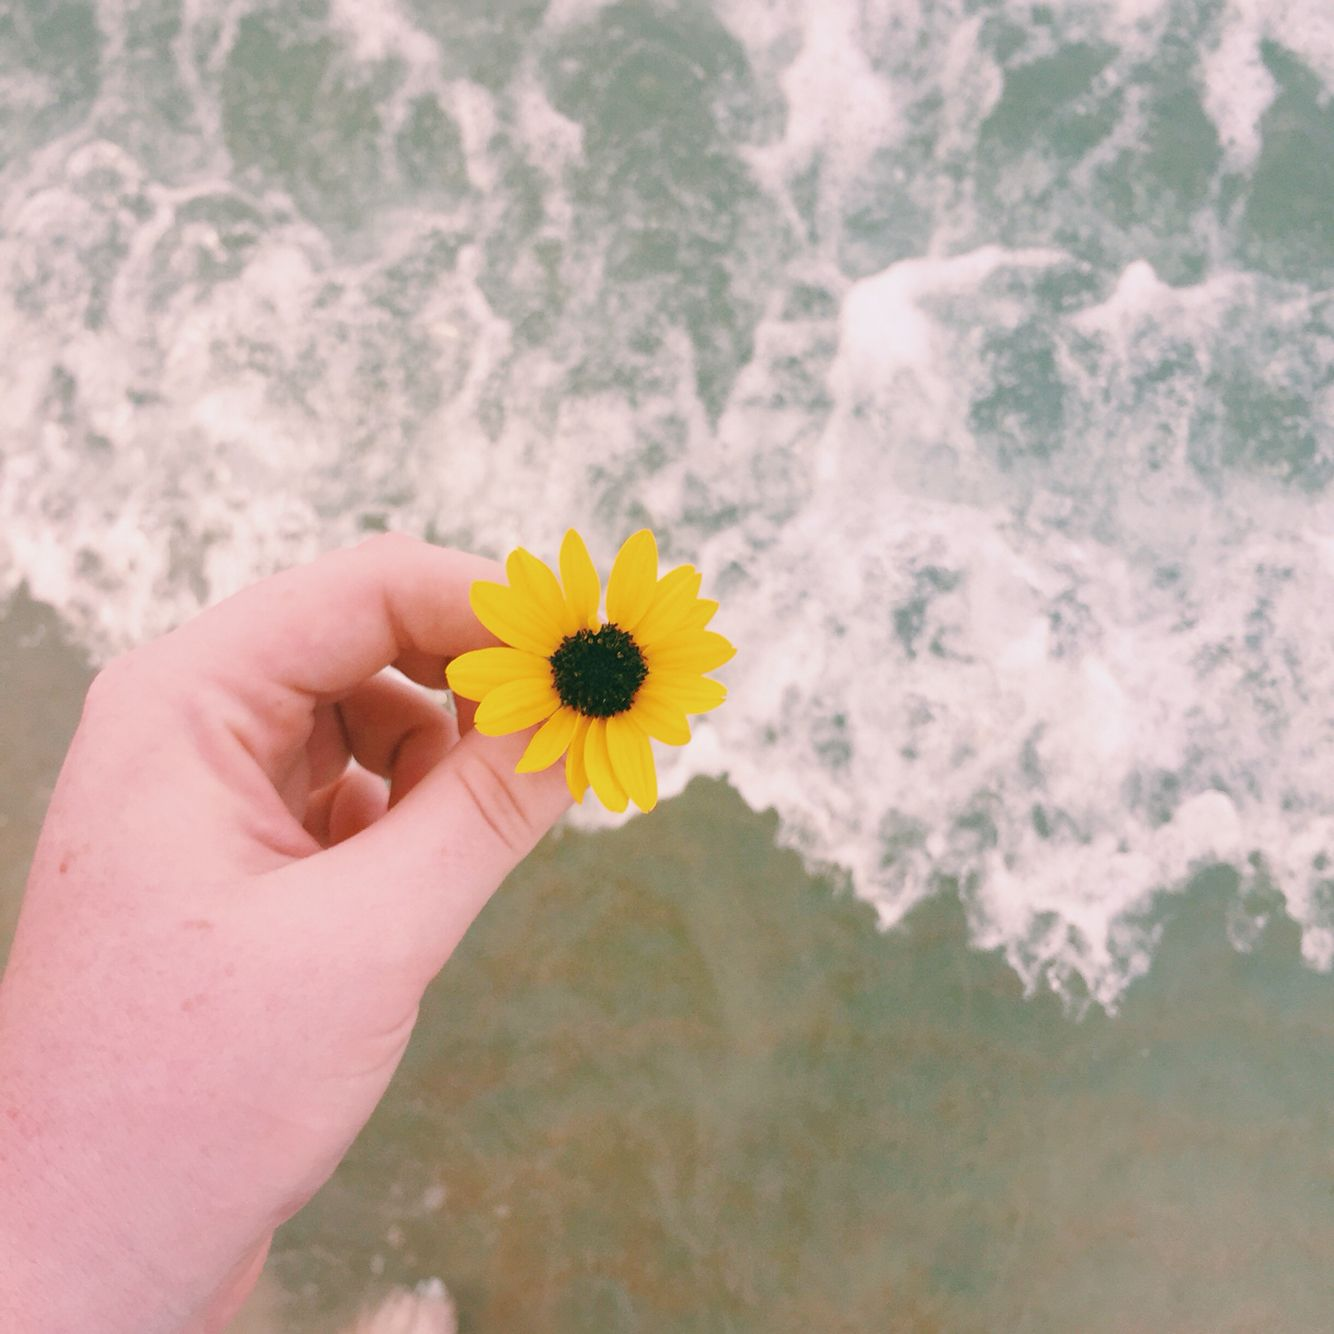 Photo by Anna Markell |I killed a flower for this picture||#hardcoreartsy| Instagram_inspiration_ideas_artsy_tumblr_photography_VSCO_beach_flower_ocean_hand_water_florida_iphone 6